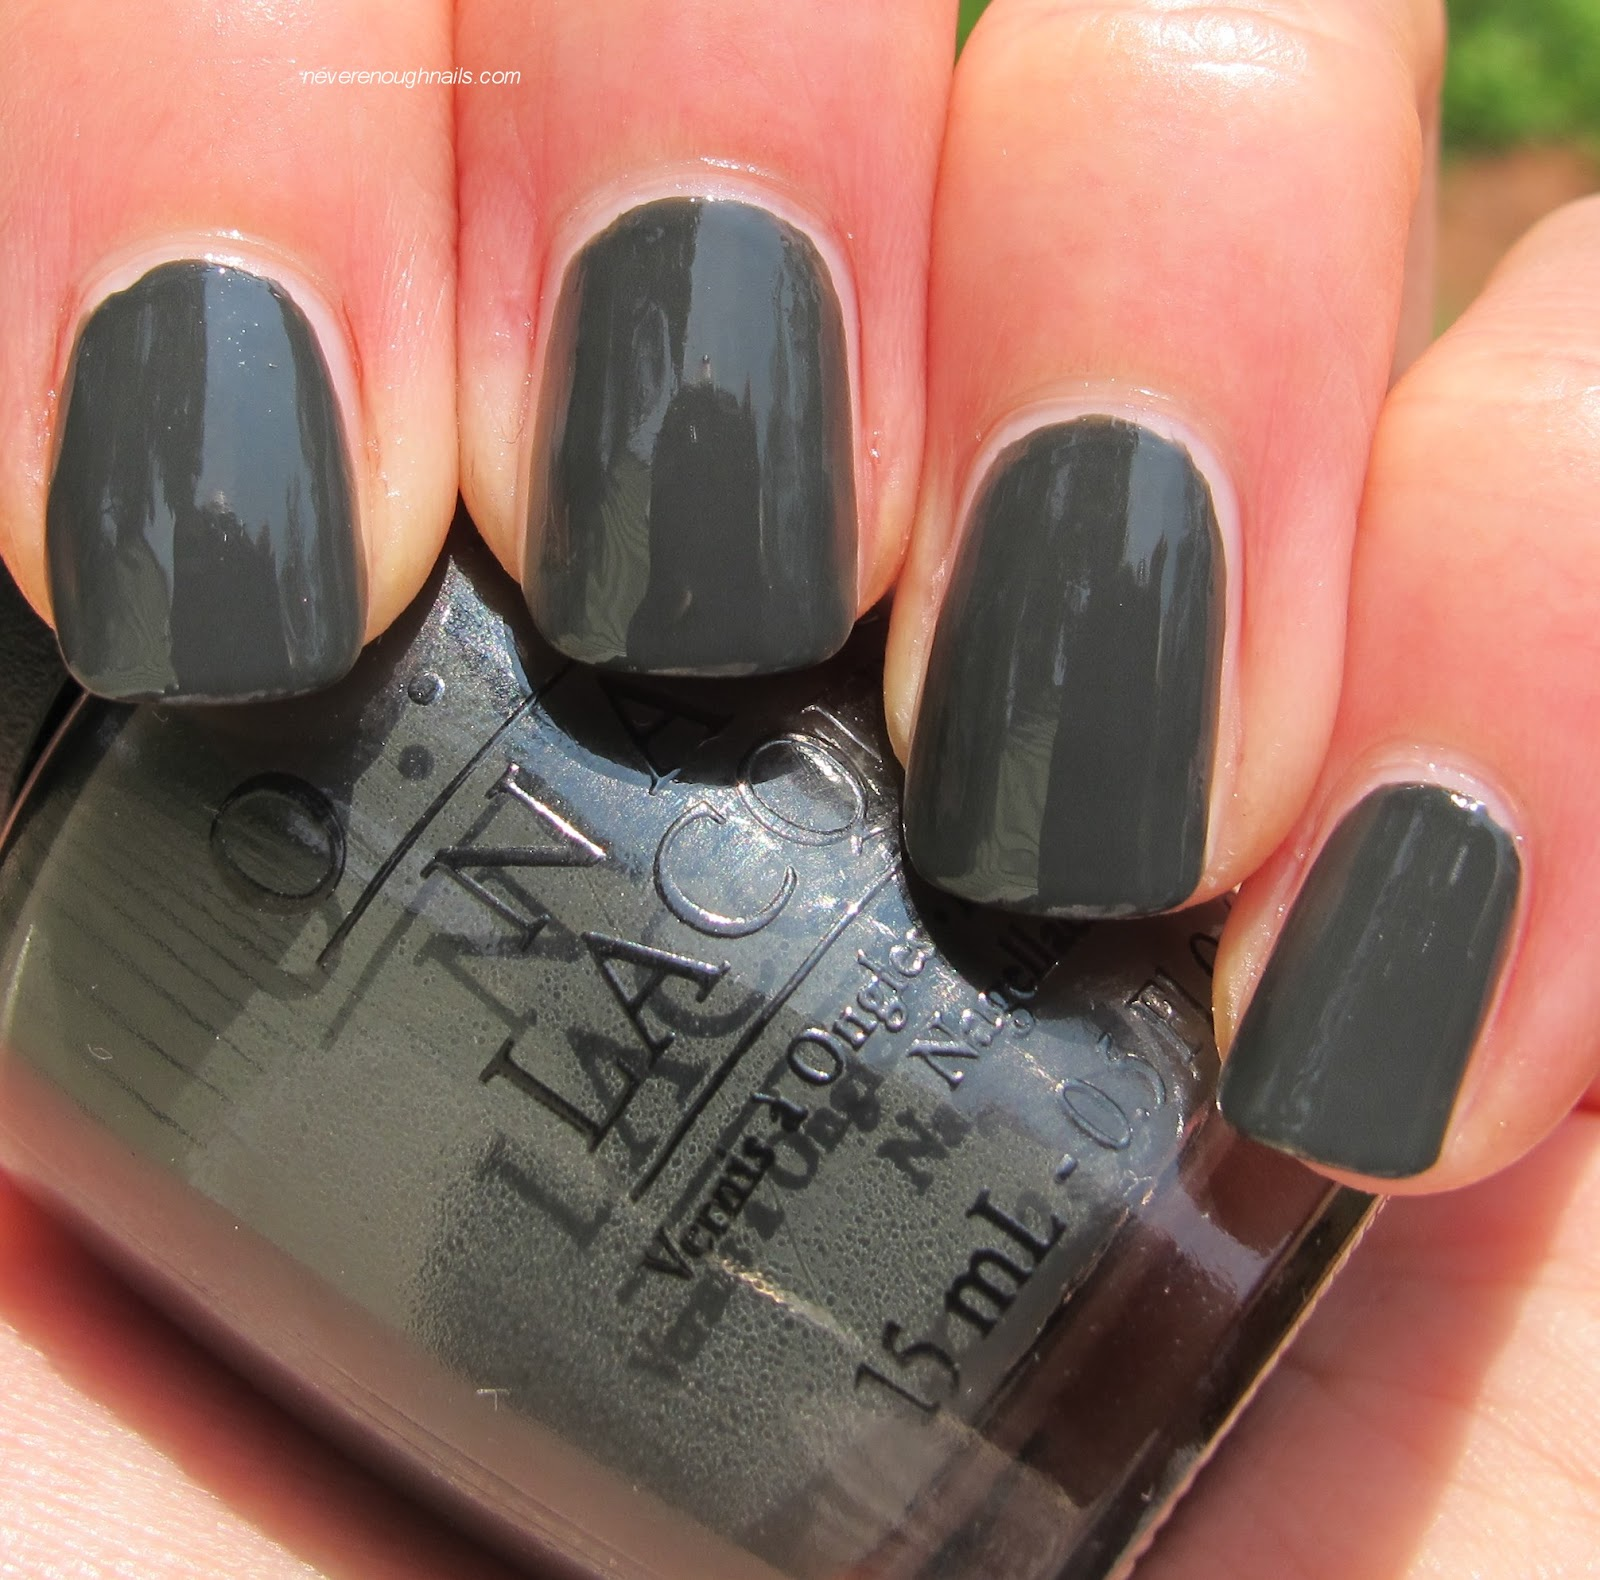 Never Enough Nails: OPI Germany Part 2!!